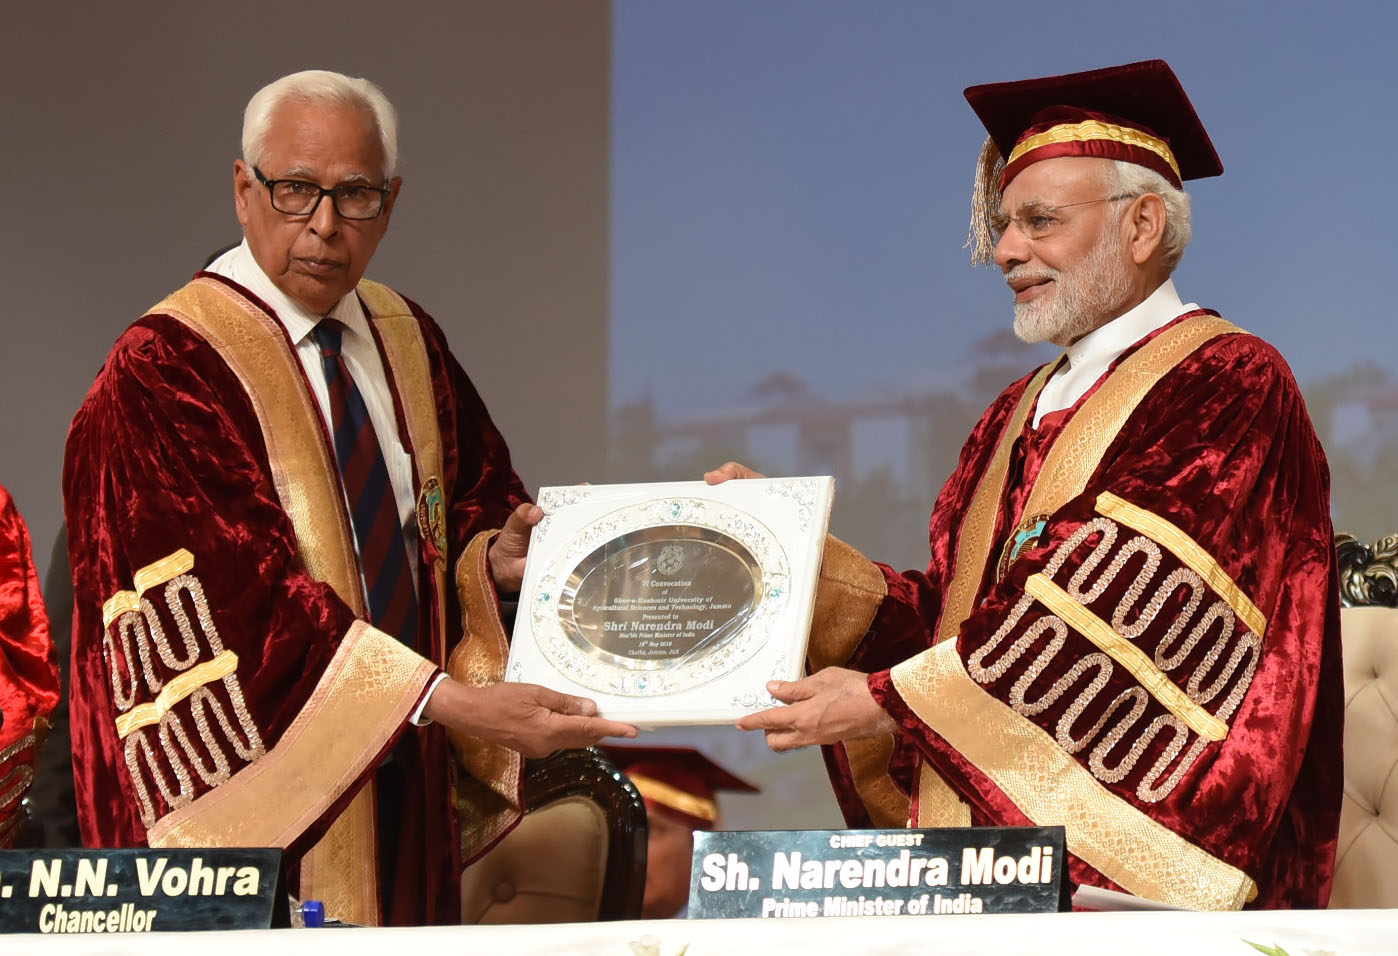 The Prime Minister, Shri Narendra Modi at the Convocation of the Sher-E-Kashmir University of Agricultural Sciences and Technology, in Jammu on May 19, 2018. The Governor of Jammu and Kashmir, Shri N.N. Vohra is also seen.